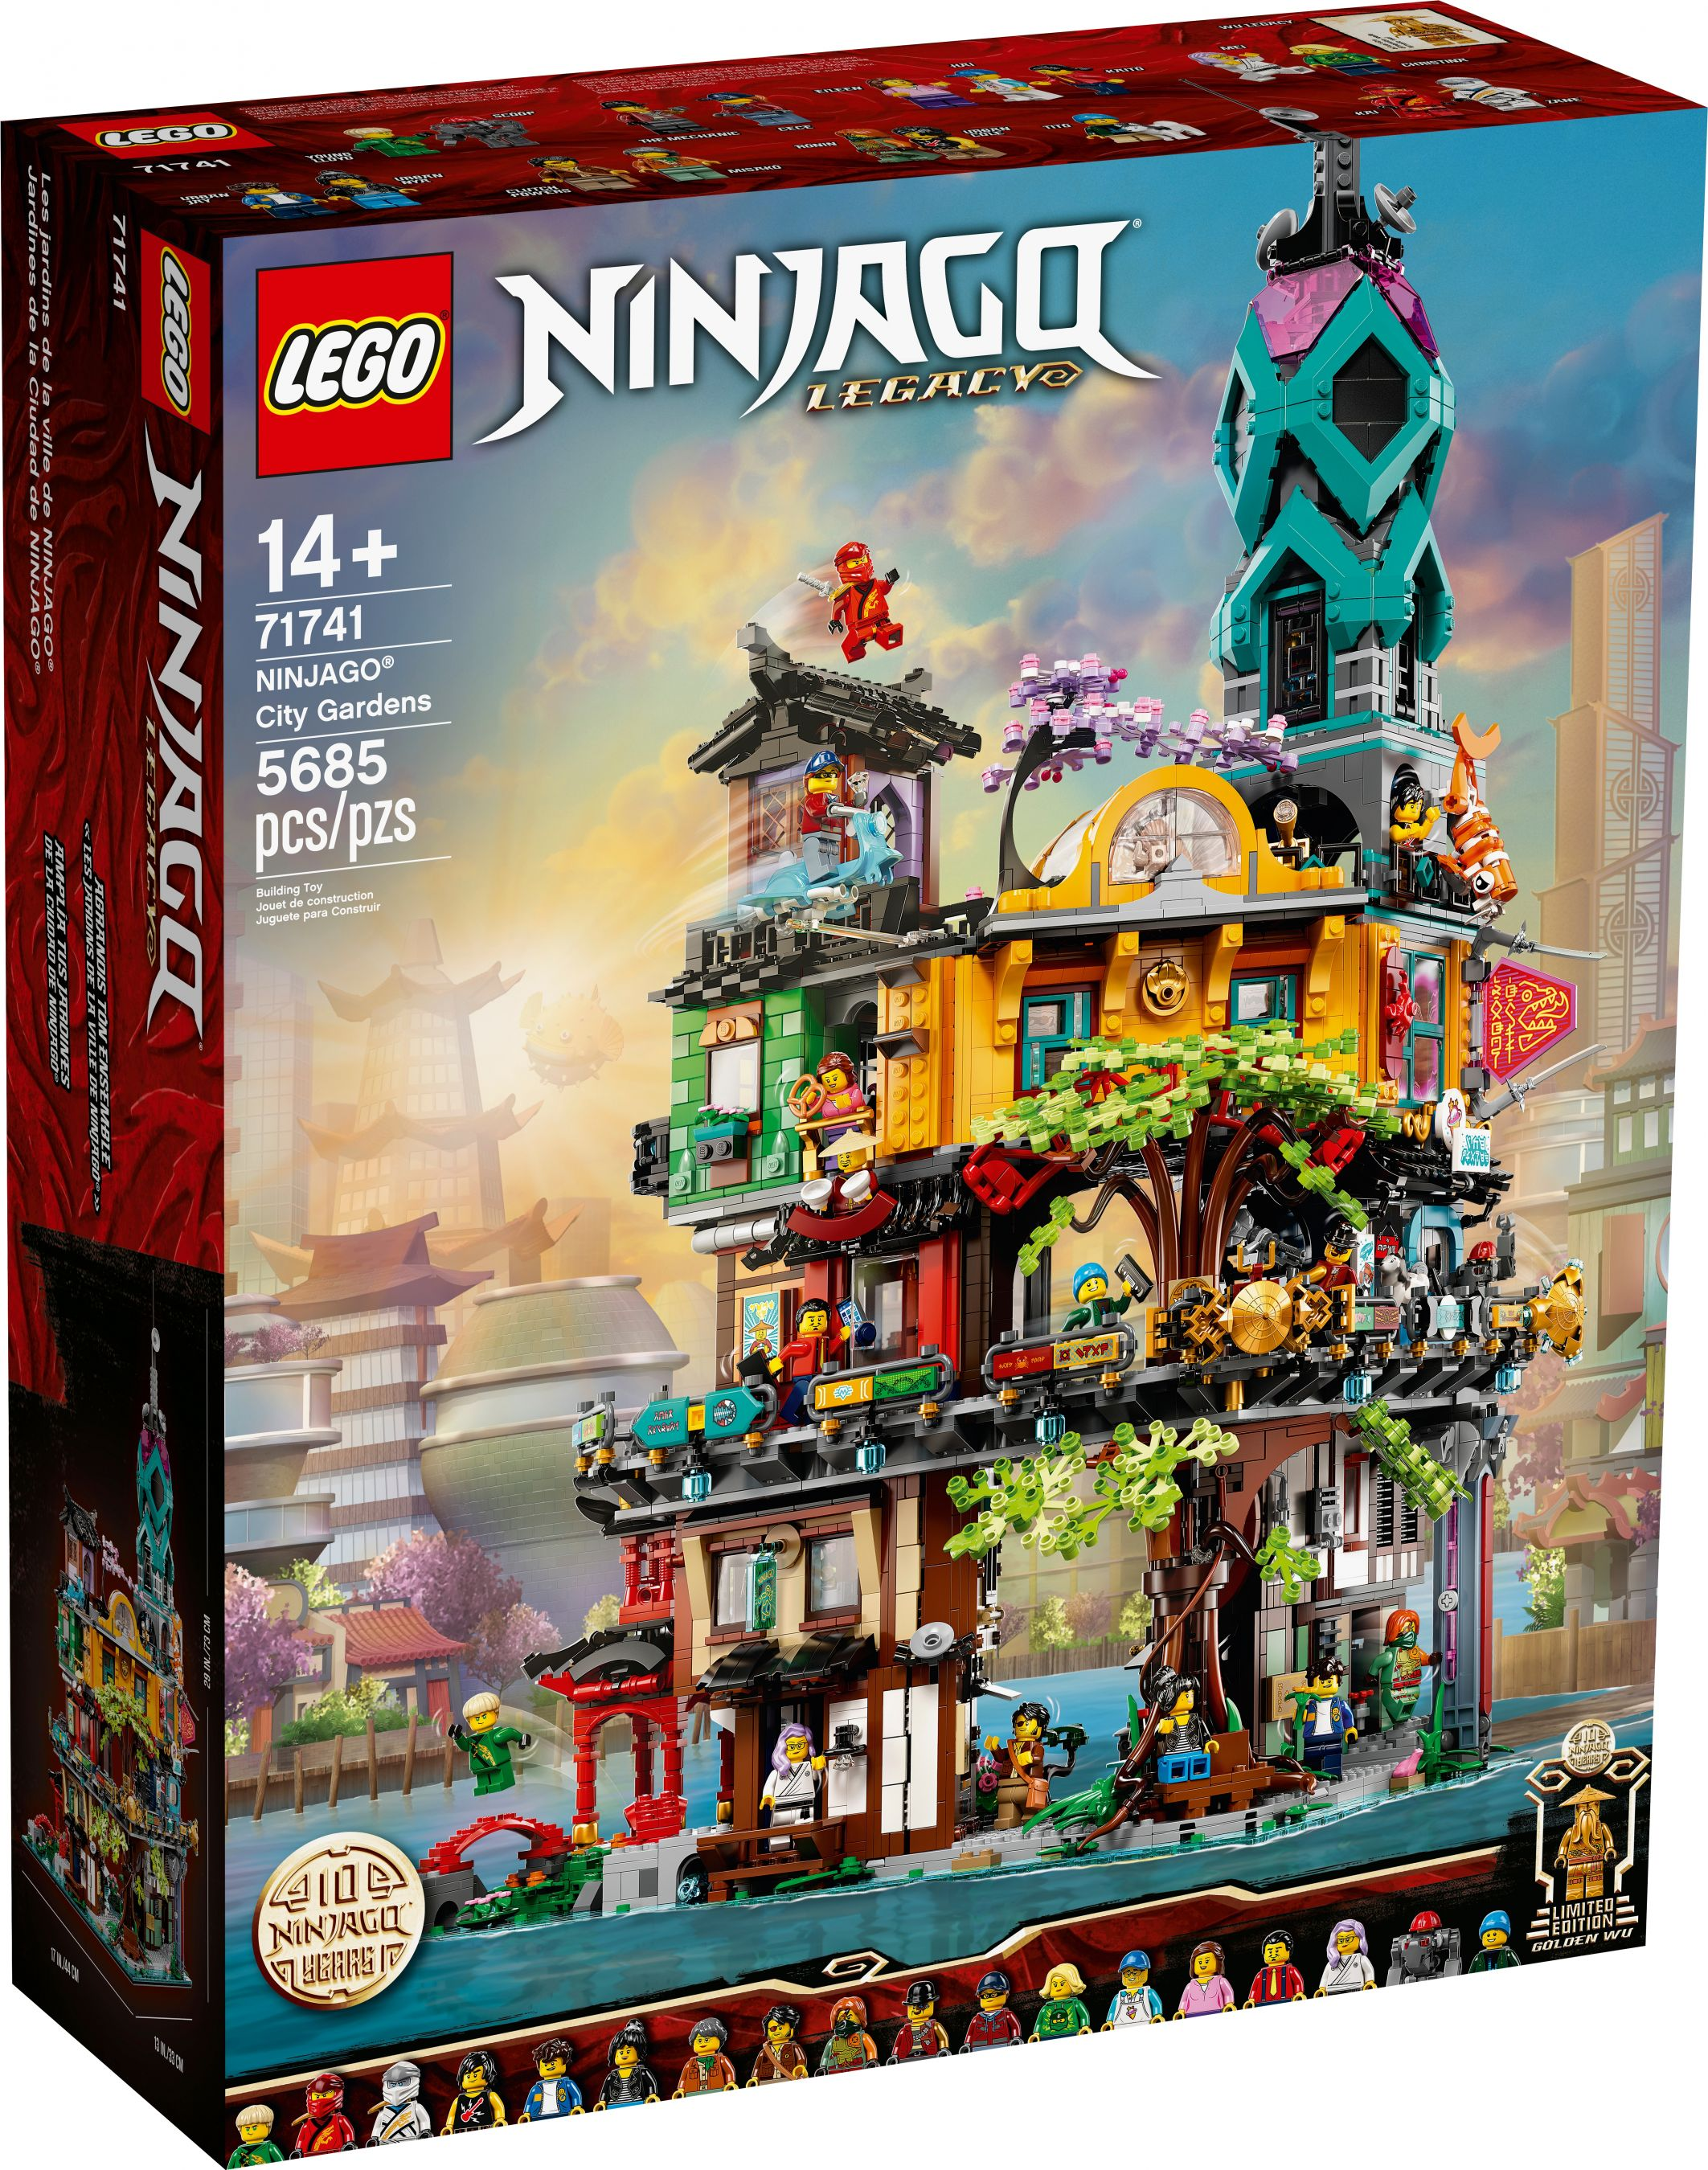 LEGO The LEGO Ninjago Movie 71741 Die Gärten von Ninjago City LEGO_71741_alt1.jpg